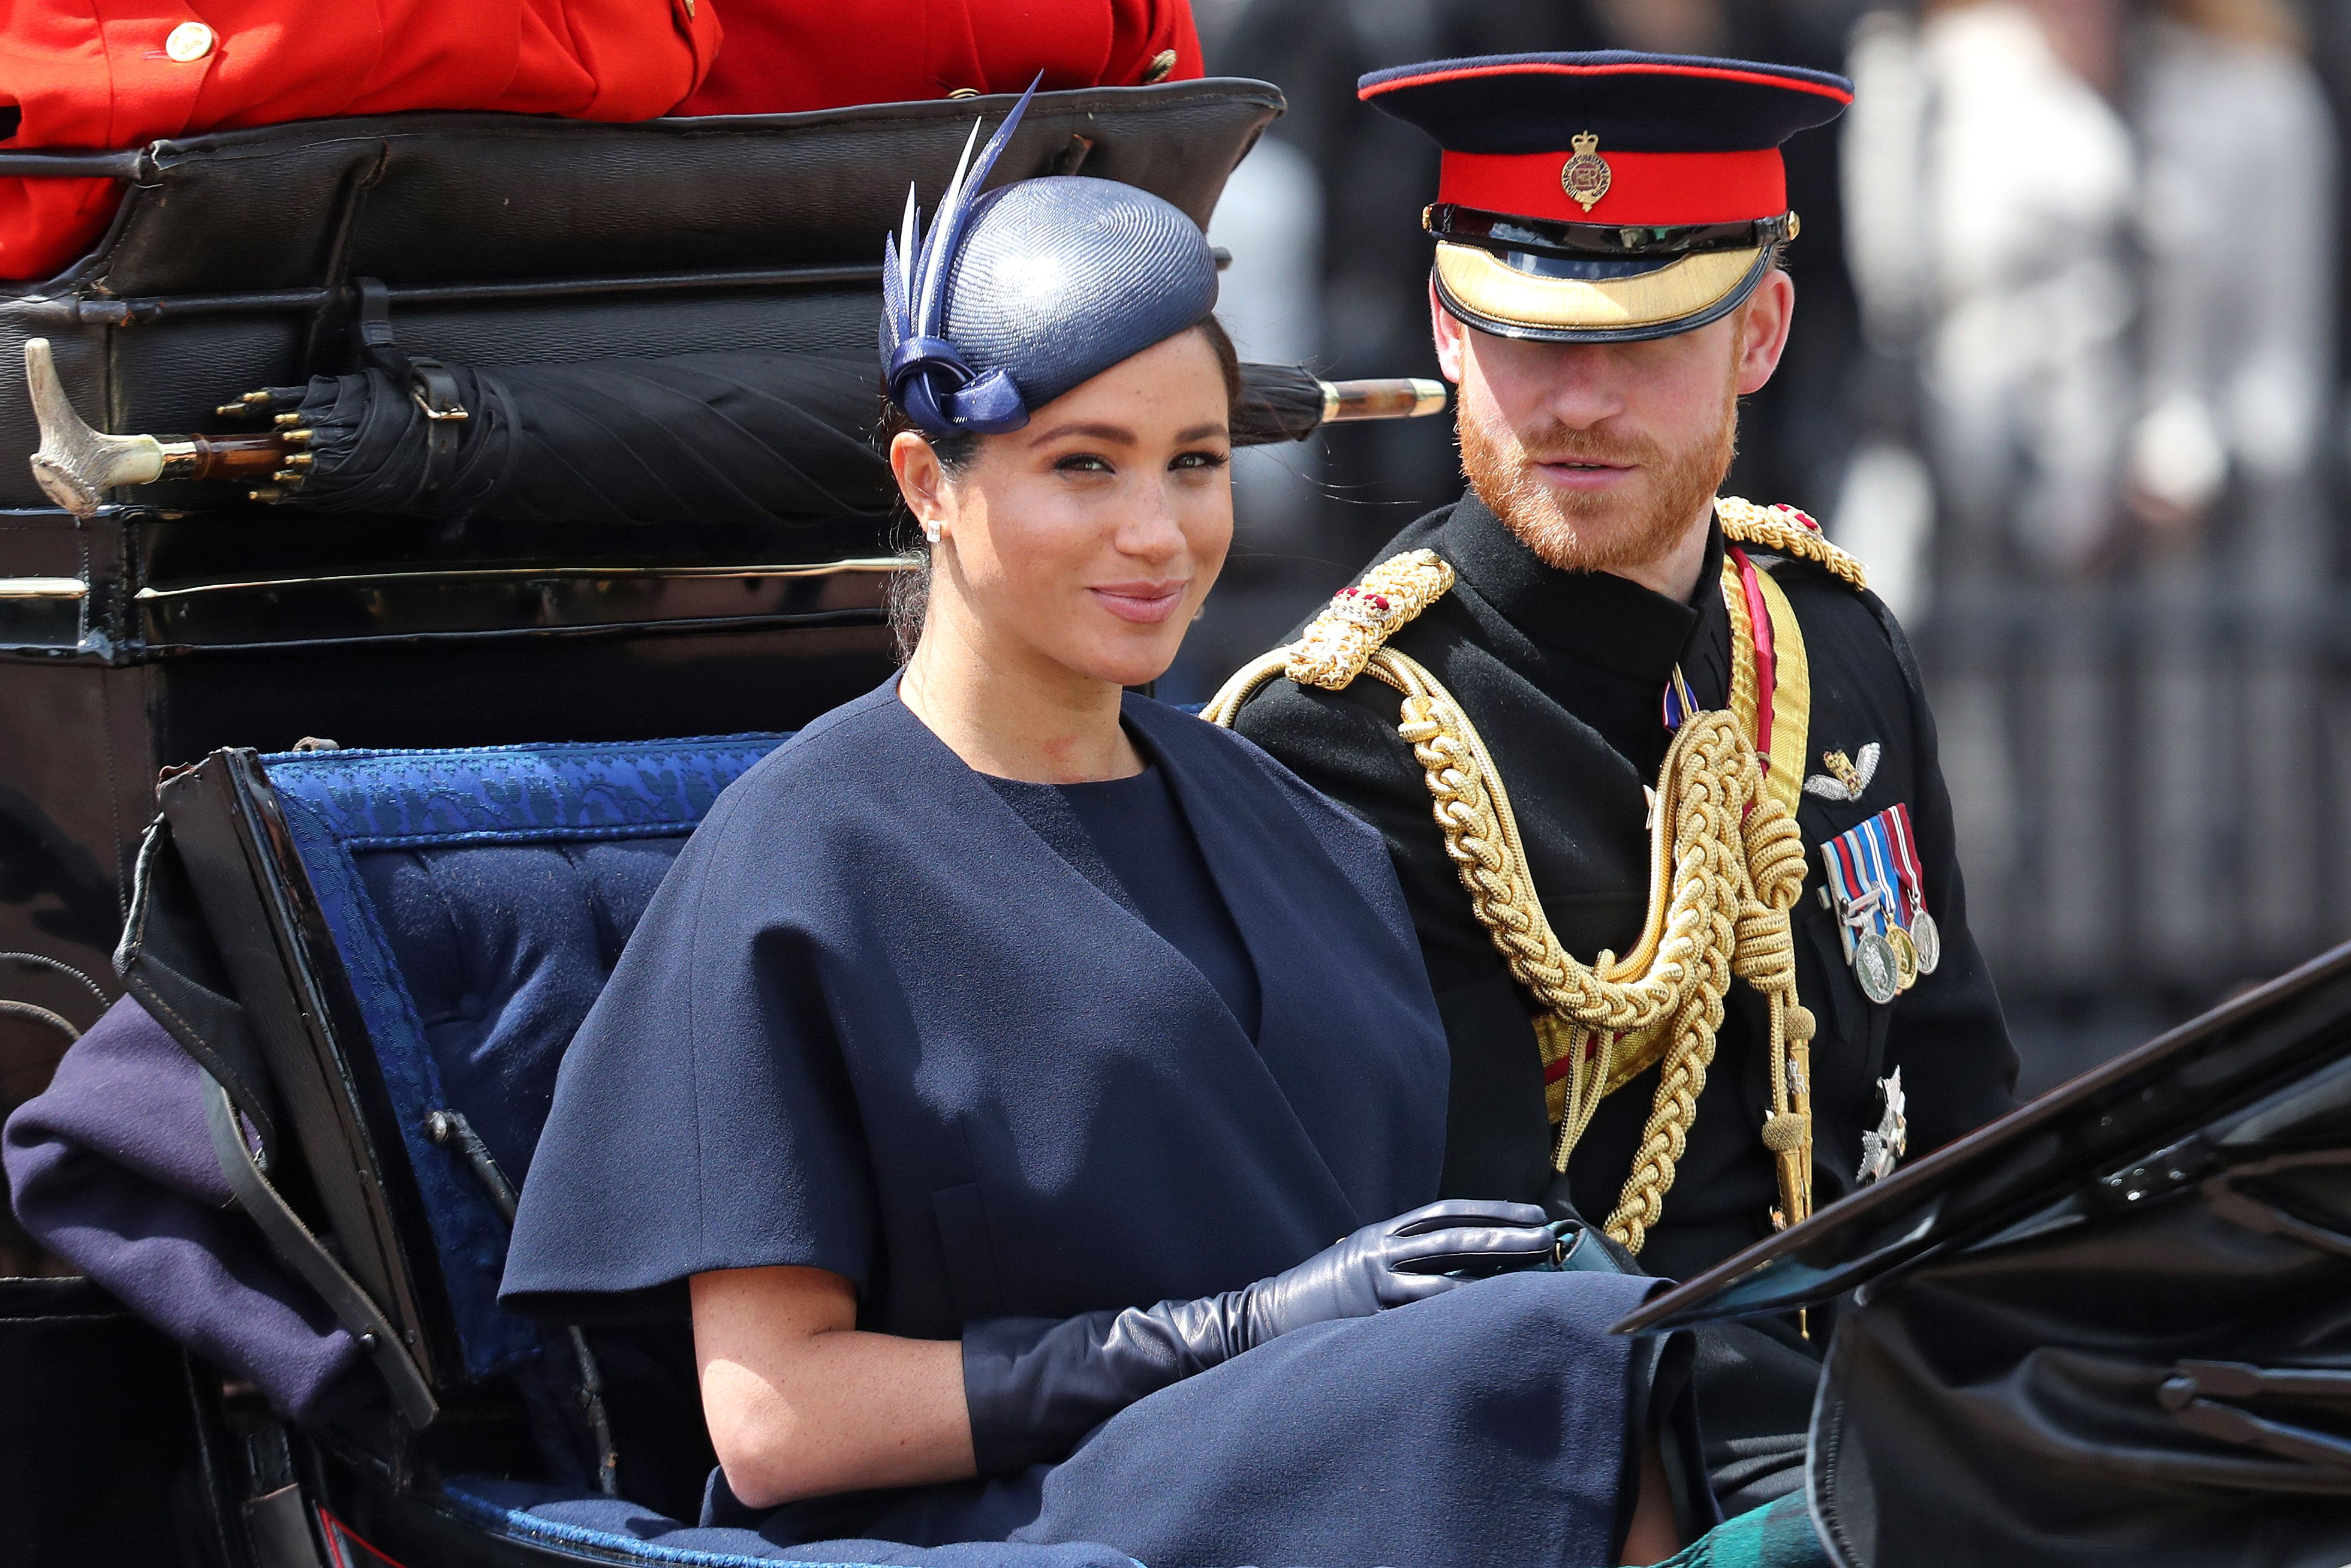 What Meghan Markle's New Diamond Band on Her Ring Finger Means